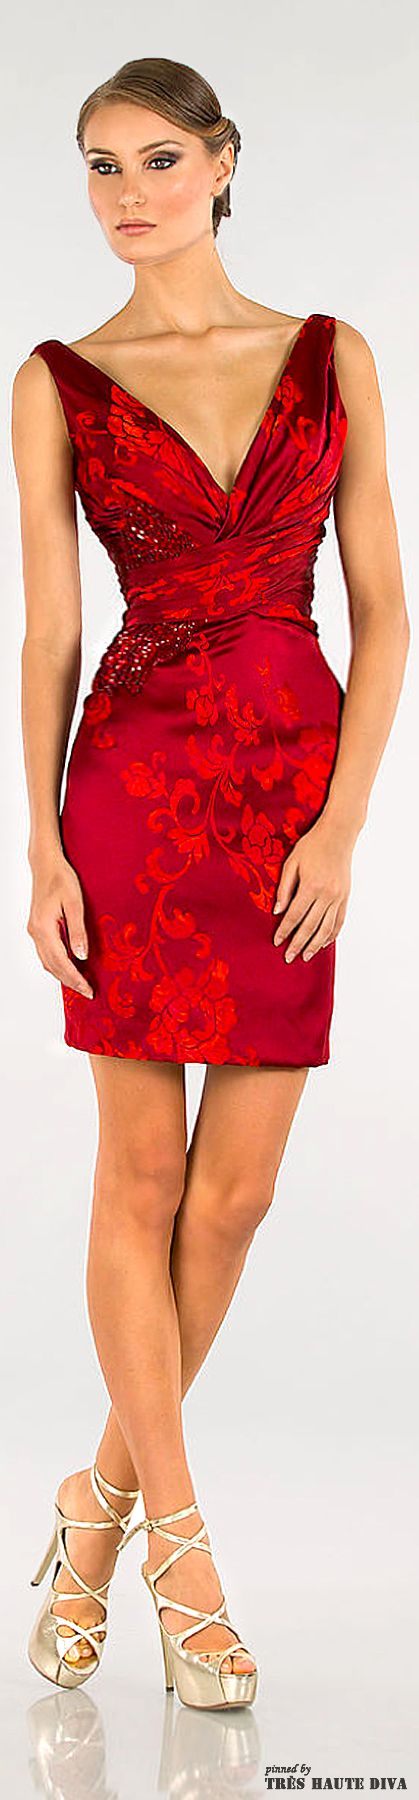 Christmas Red Cocktail Dress - Abed Mahfouz  2014